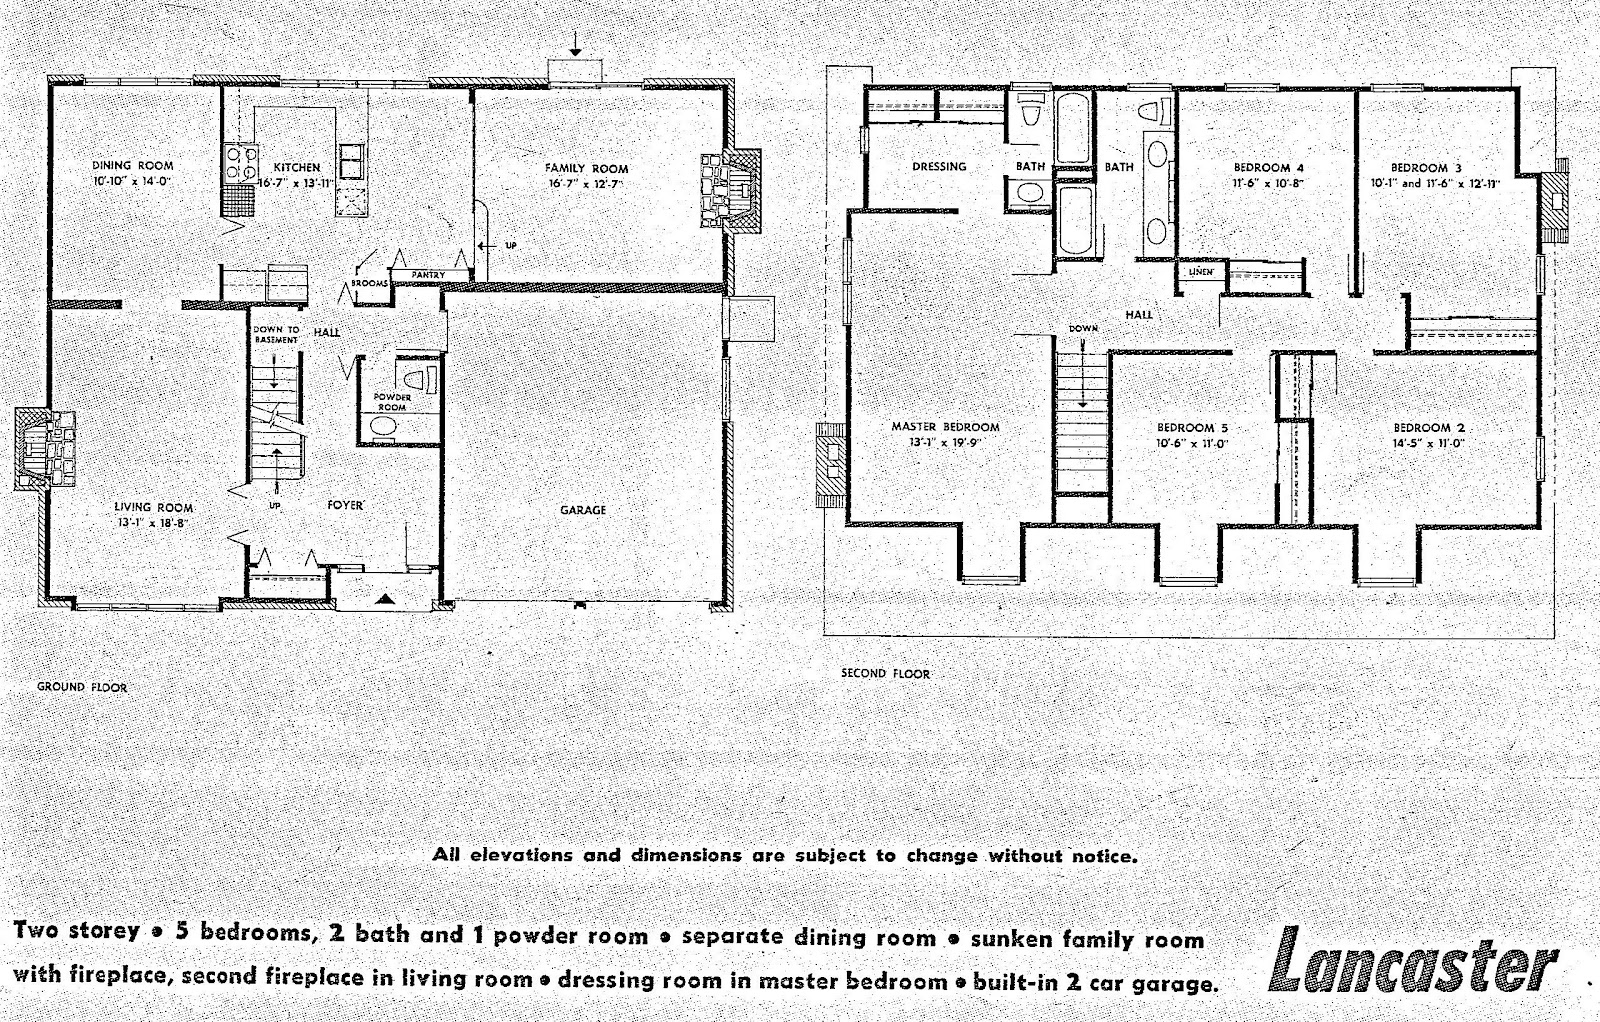 Mid century modern and 1970s era ottawa dormers Dormer floor plans